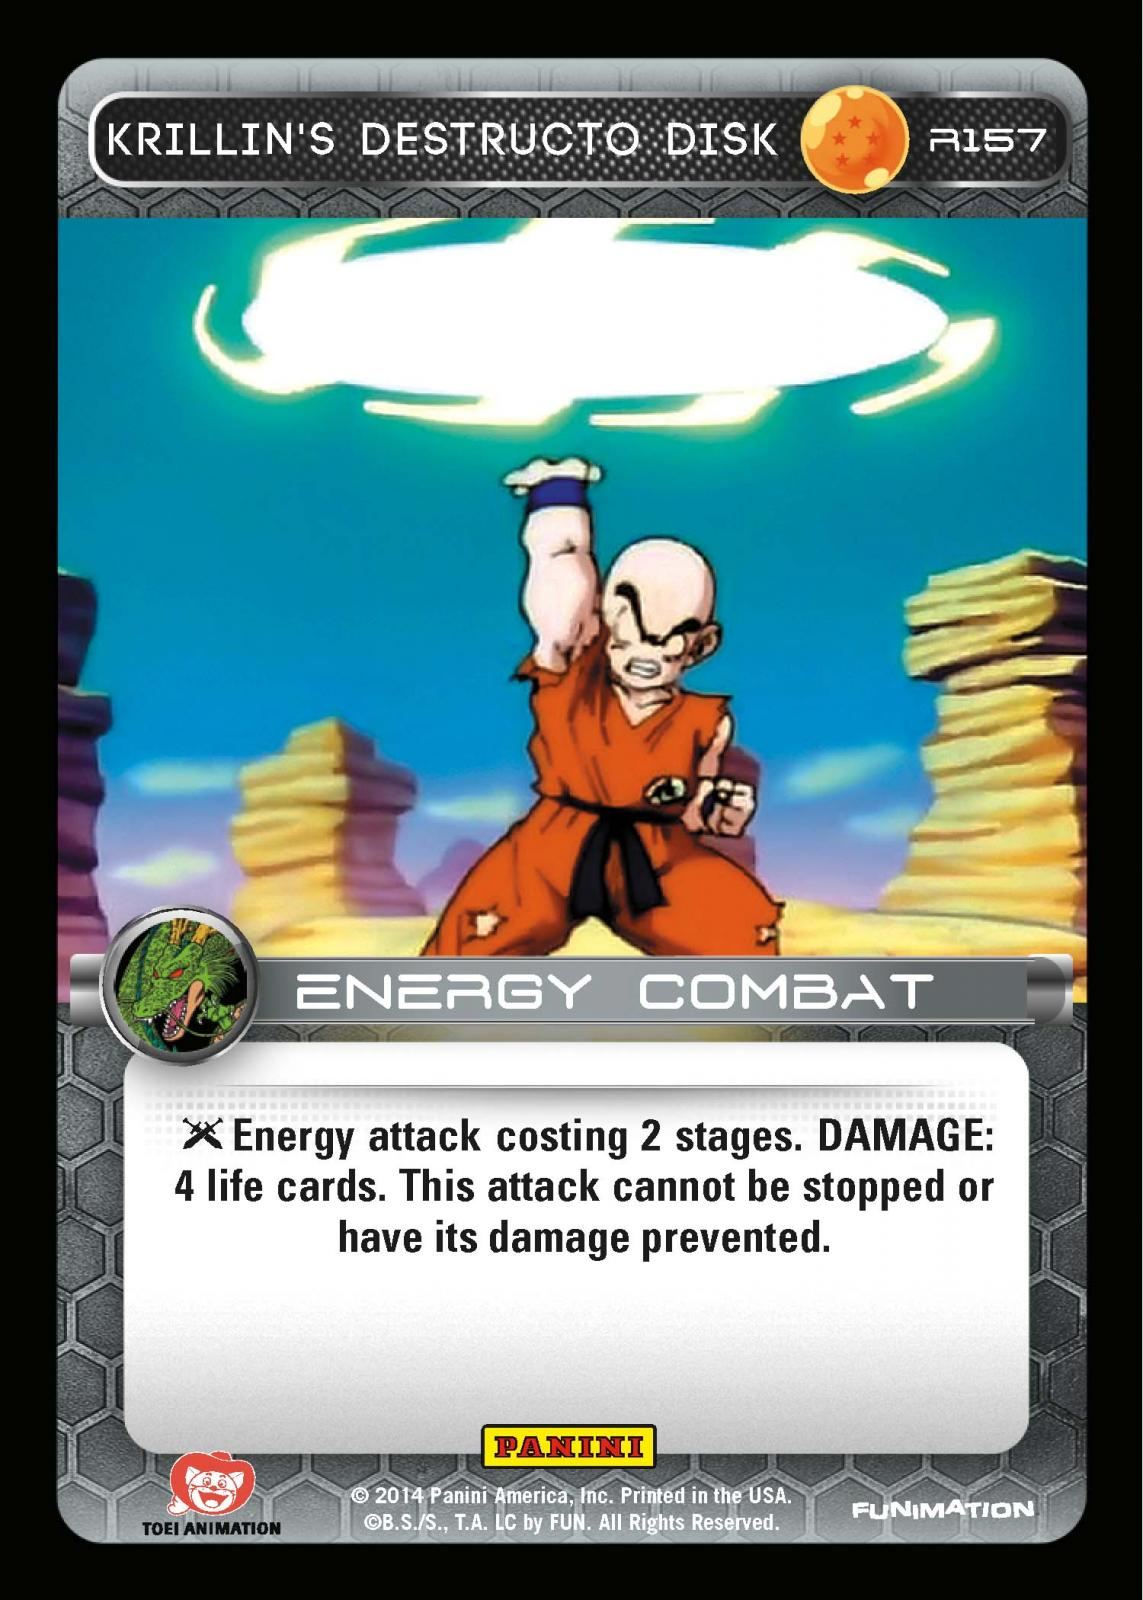 Krillin gains 100% accuracy with his destructo disc. Who ...